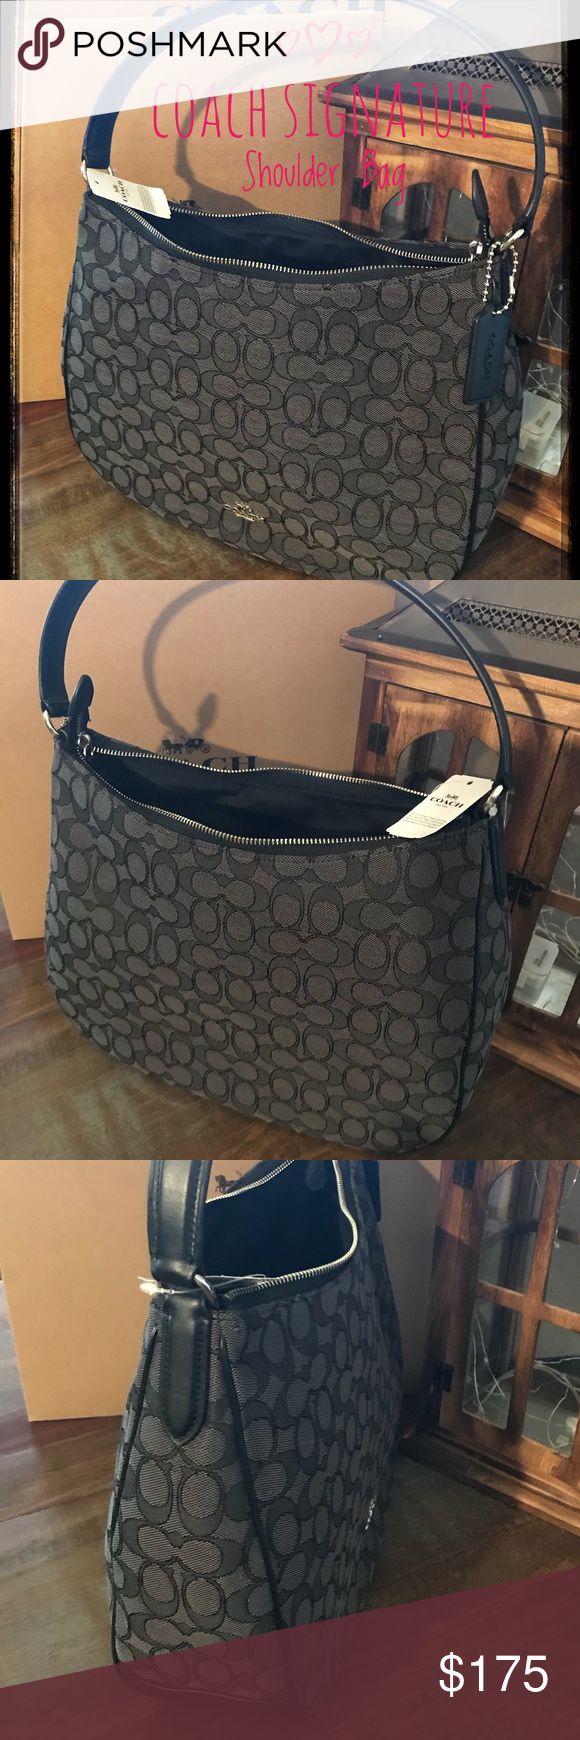 229514a4bd Coach Signature Shoulder Bag NWT Beautiful Coach Signature Shoulder Bag The  Color is Black Smoke Canvas with Black Leather Trim and Handle Silver  Hardware ...